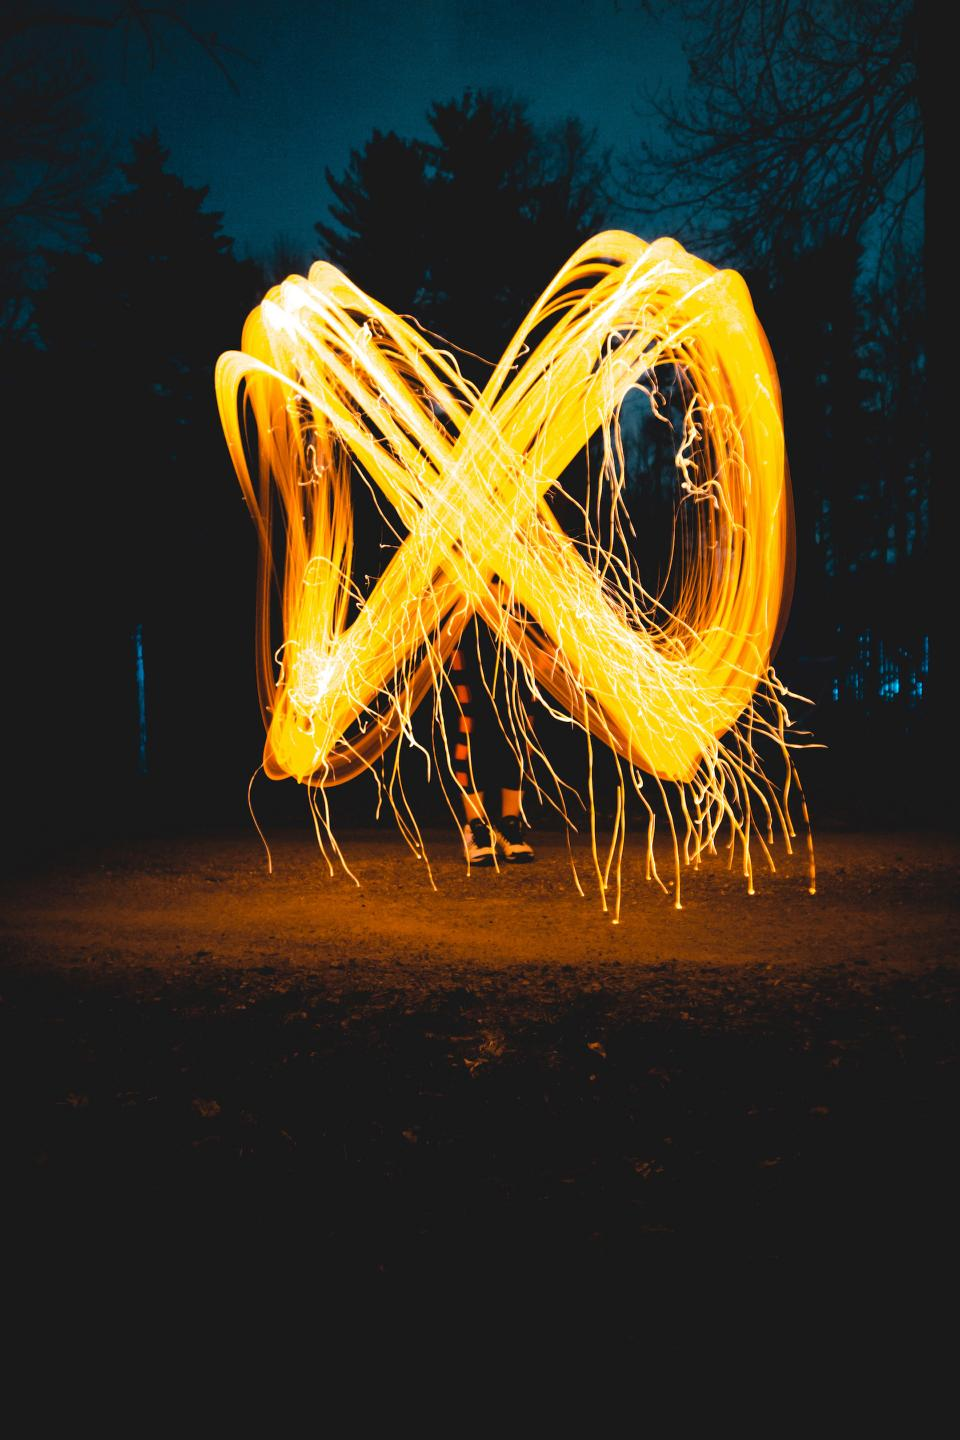 photography infinity light painting nature trees night dark people